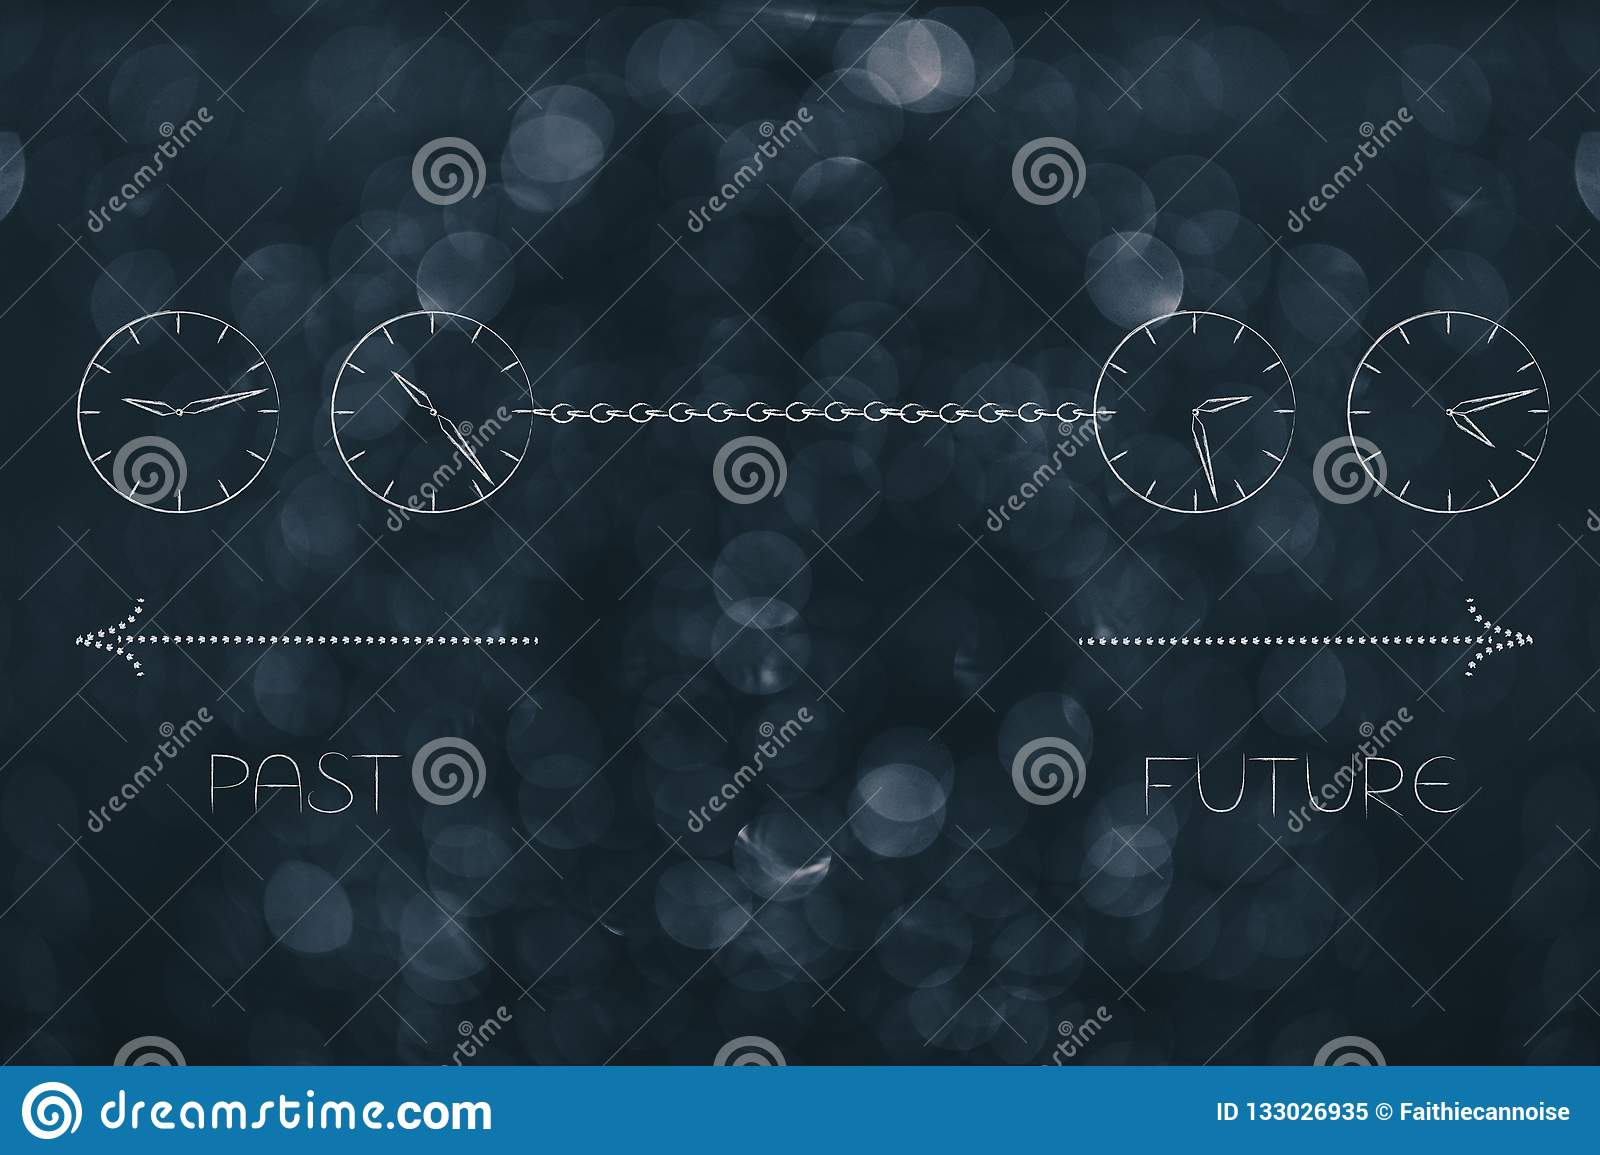 Past And Future Linked With A Chain With Clocks And Timeline